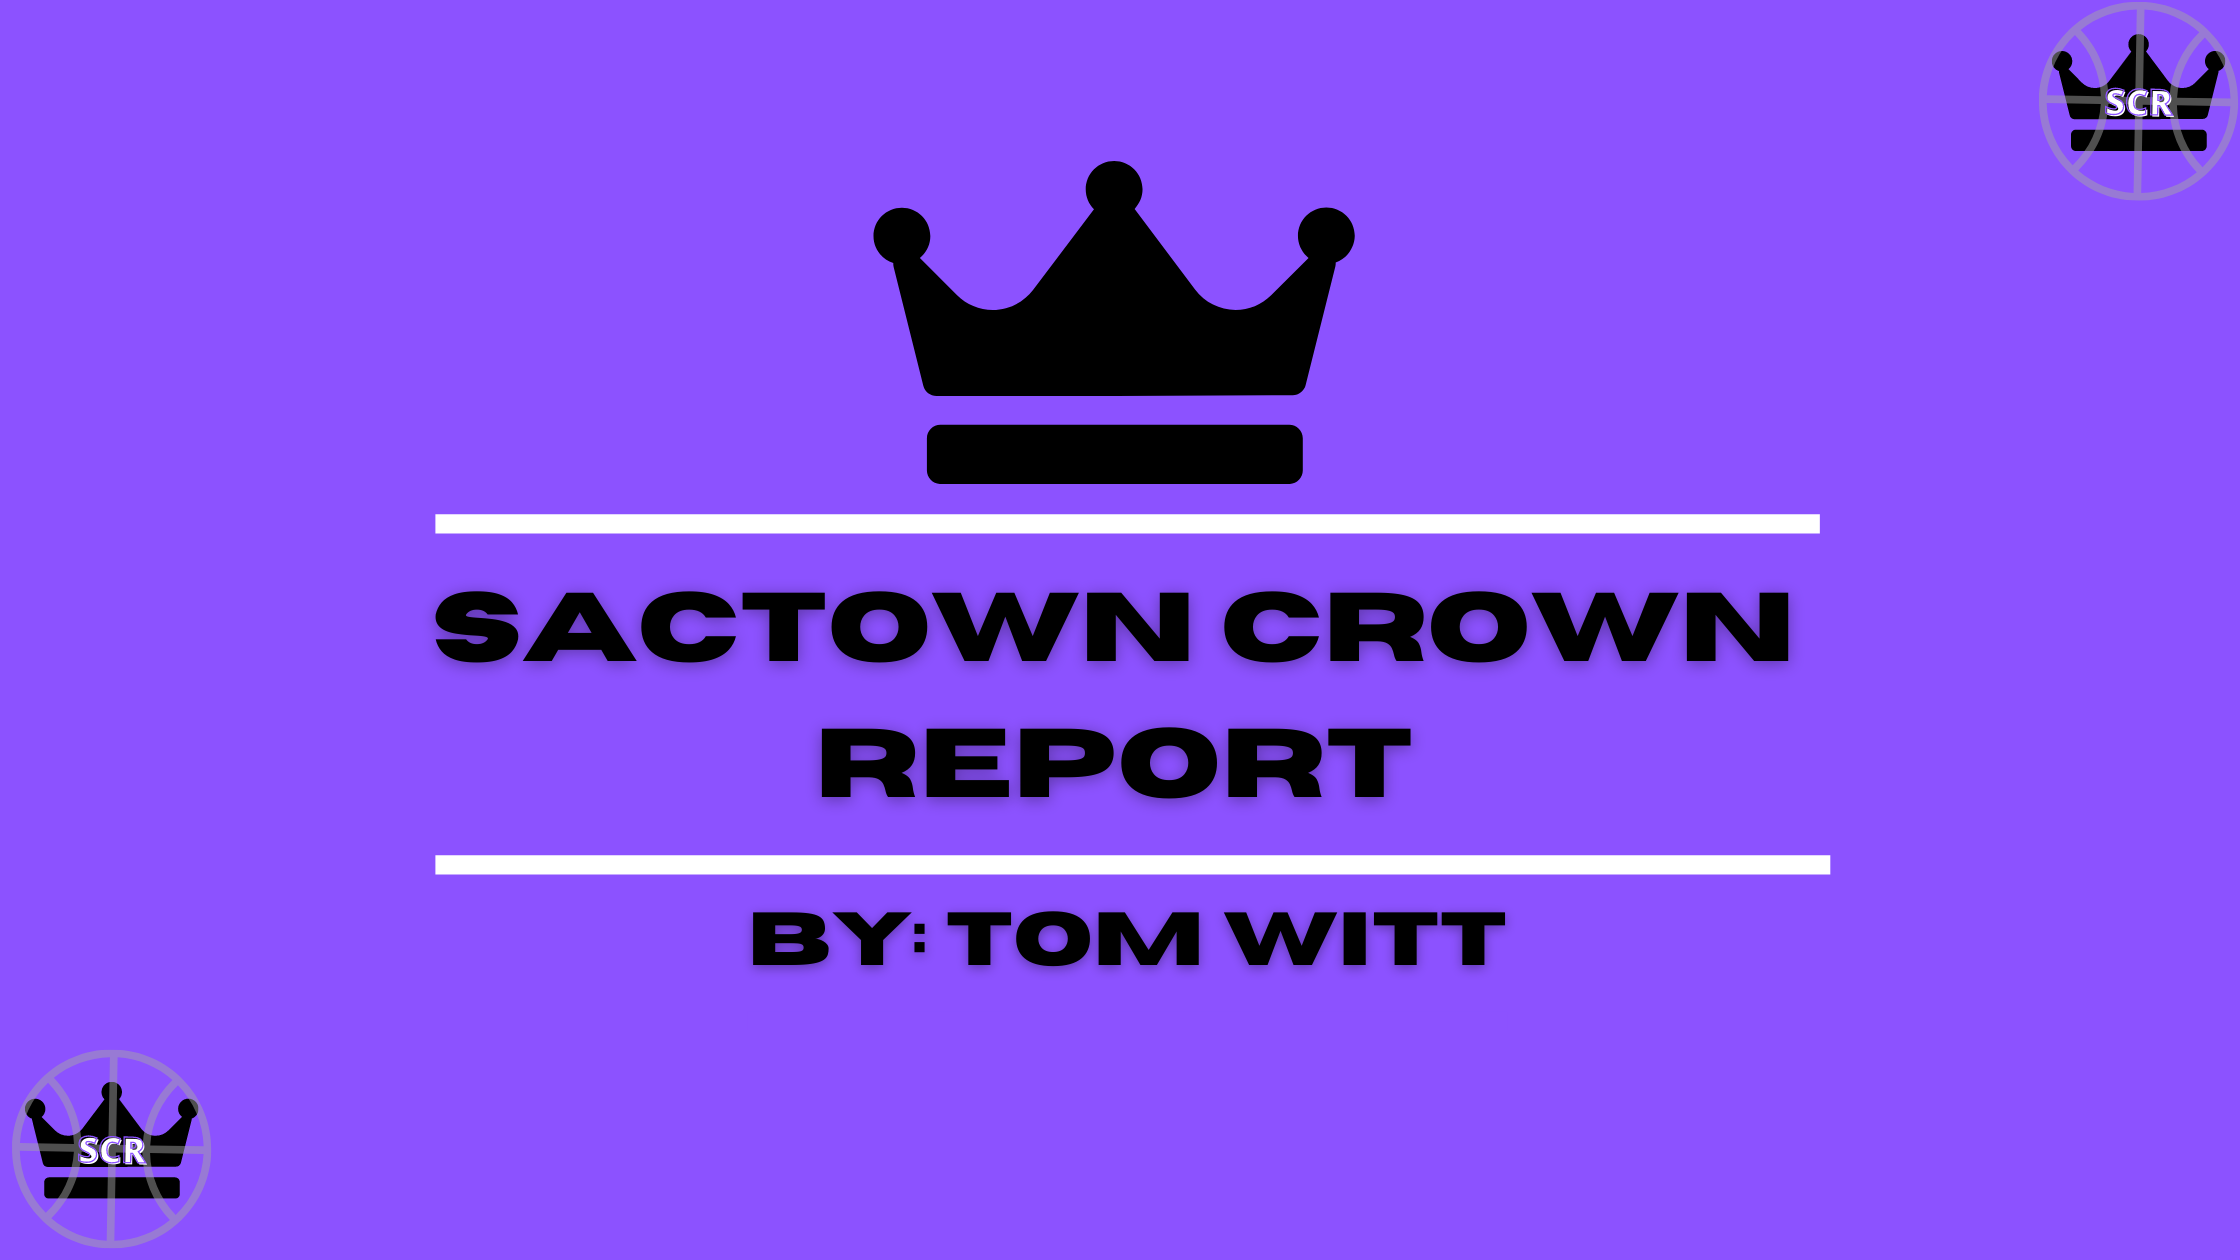 Sactown Crown Report